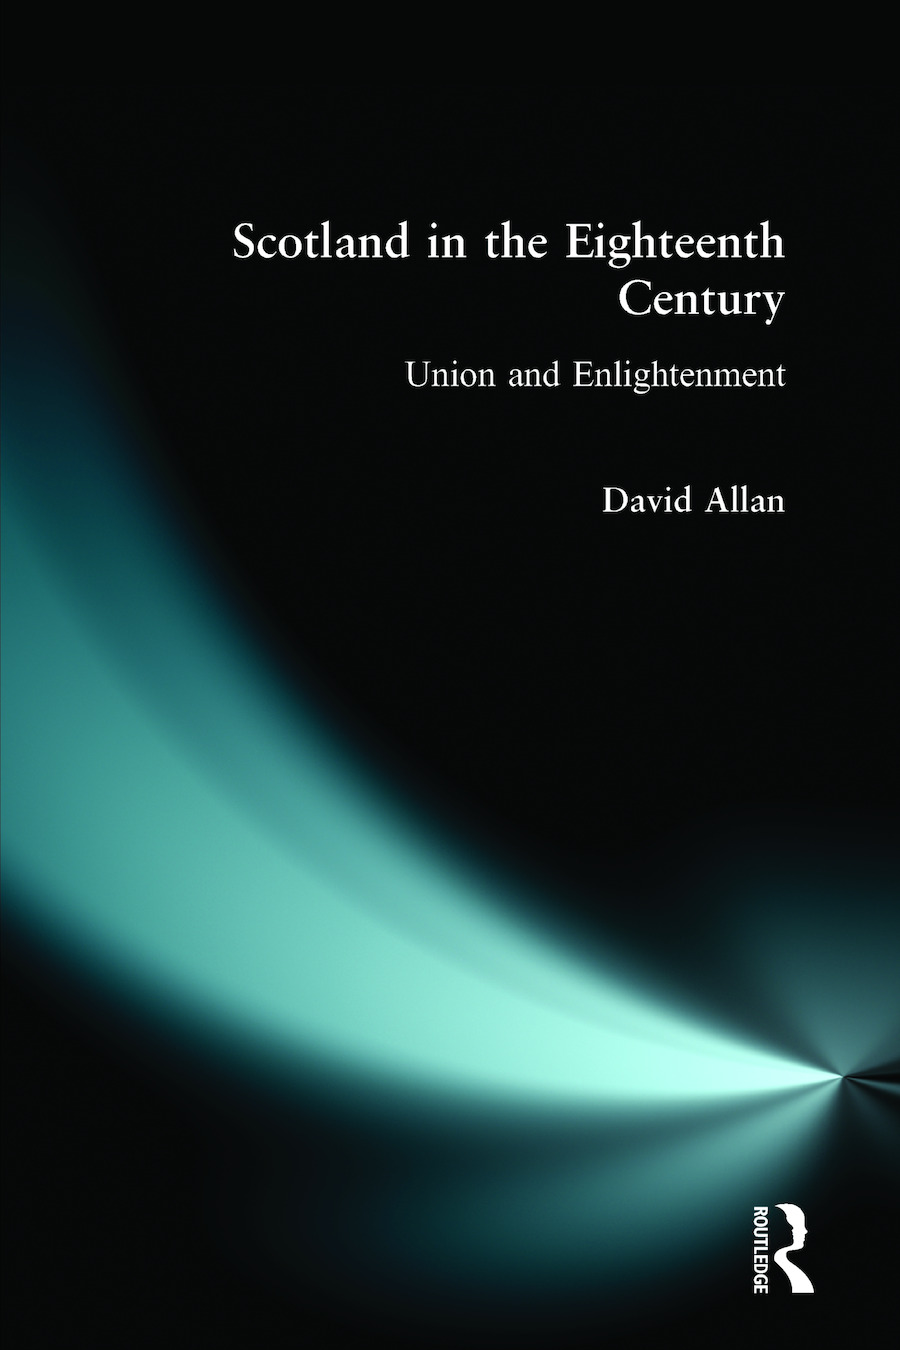 Scotland in the Eighteenth Century